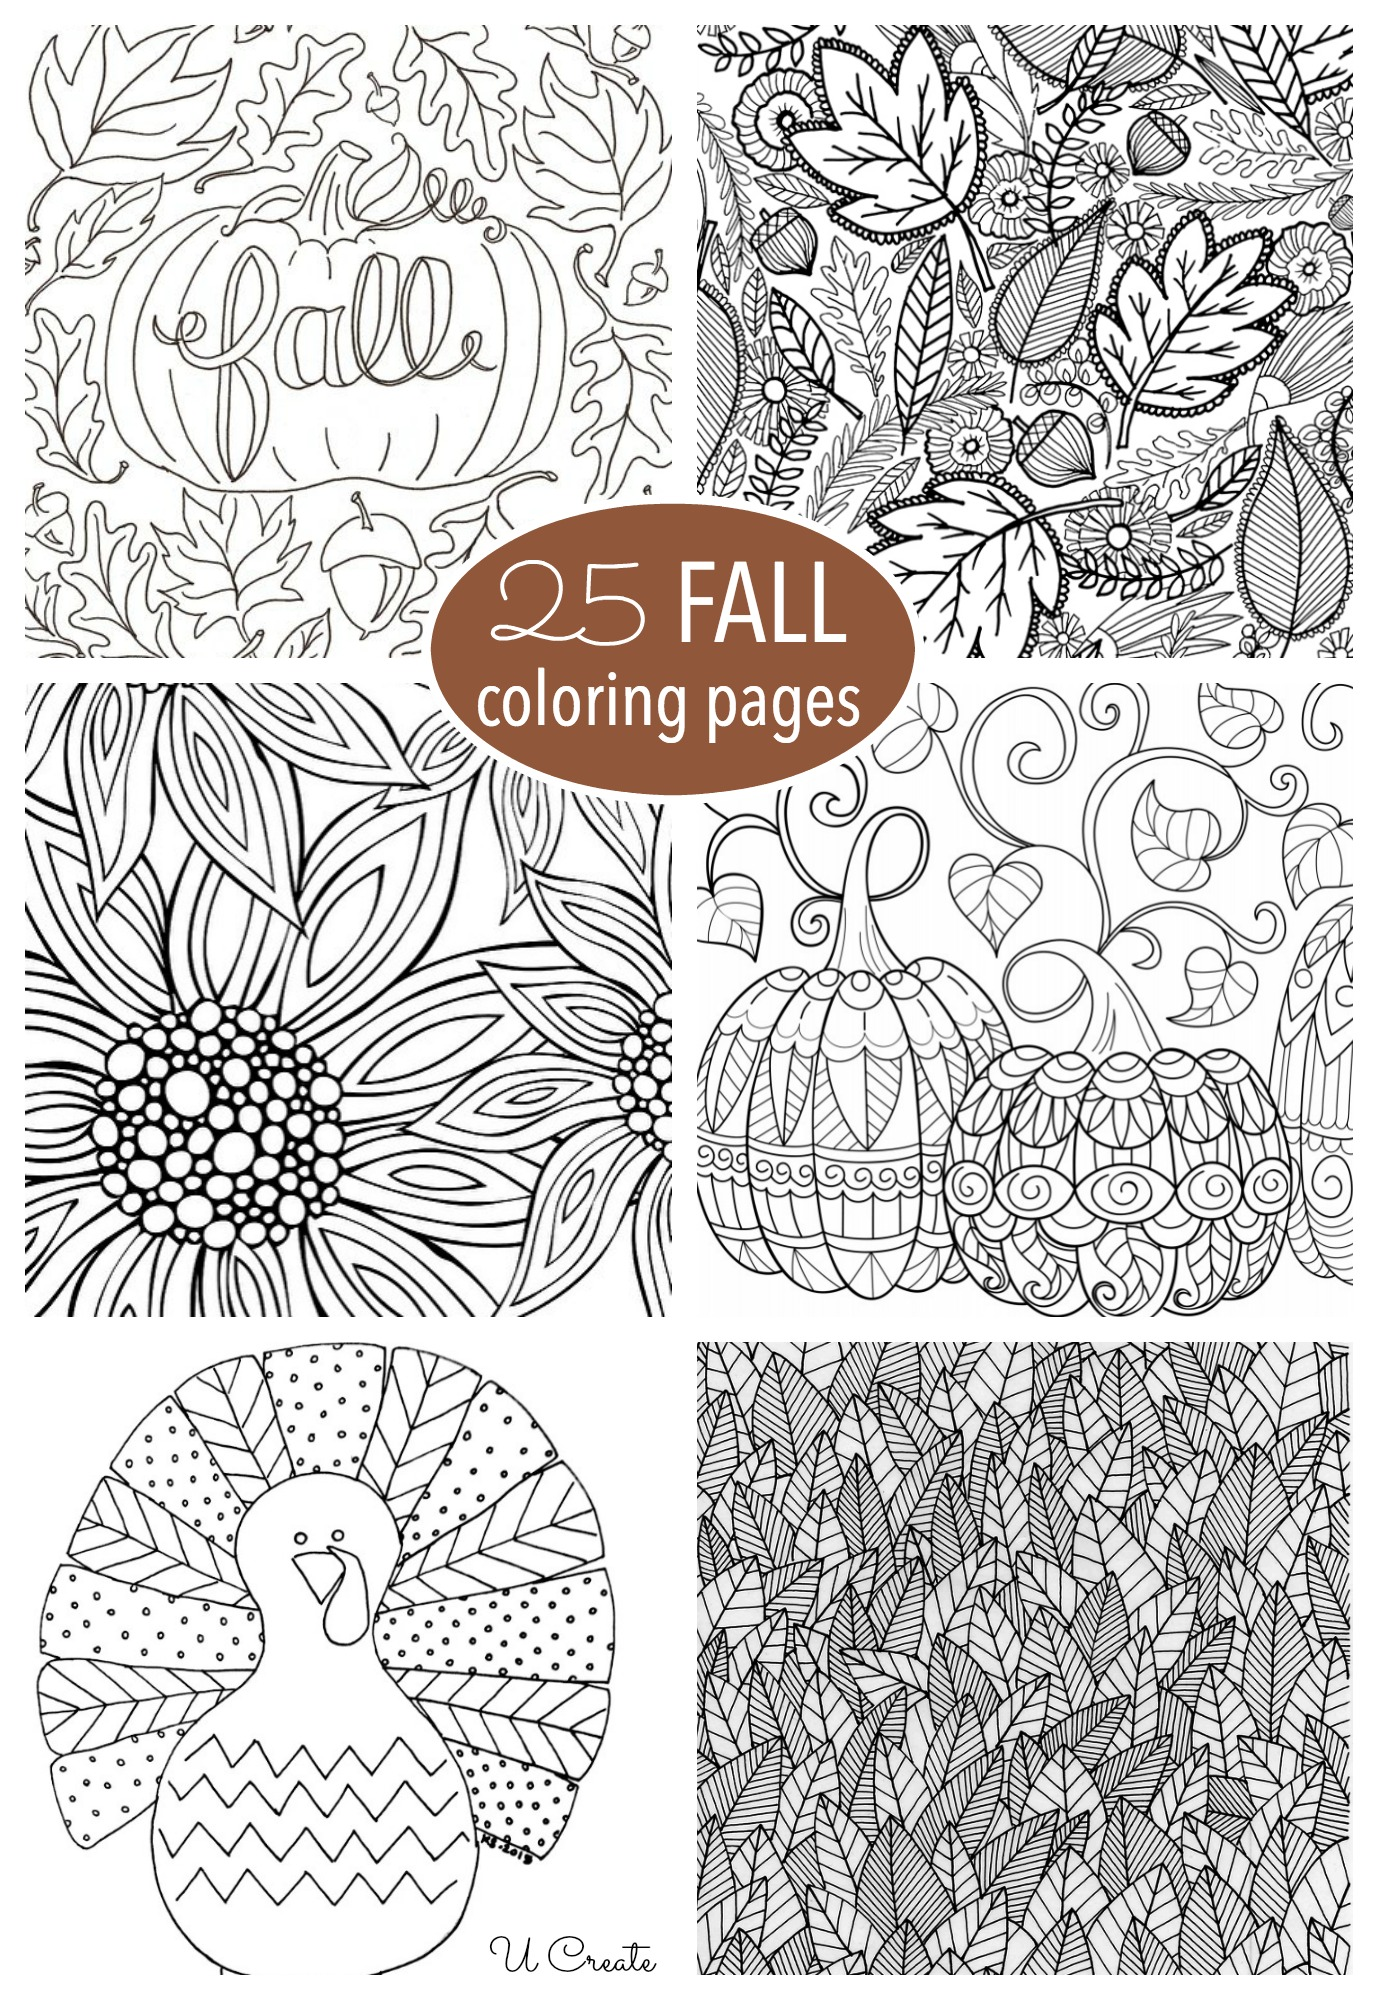 http://www.u-createcrafts.com/wp-content/uploads/2015/10/fall-coloring-pages.jpg